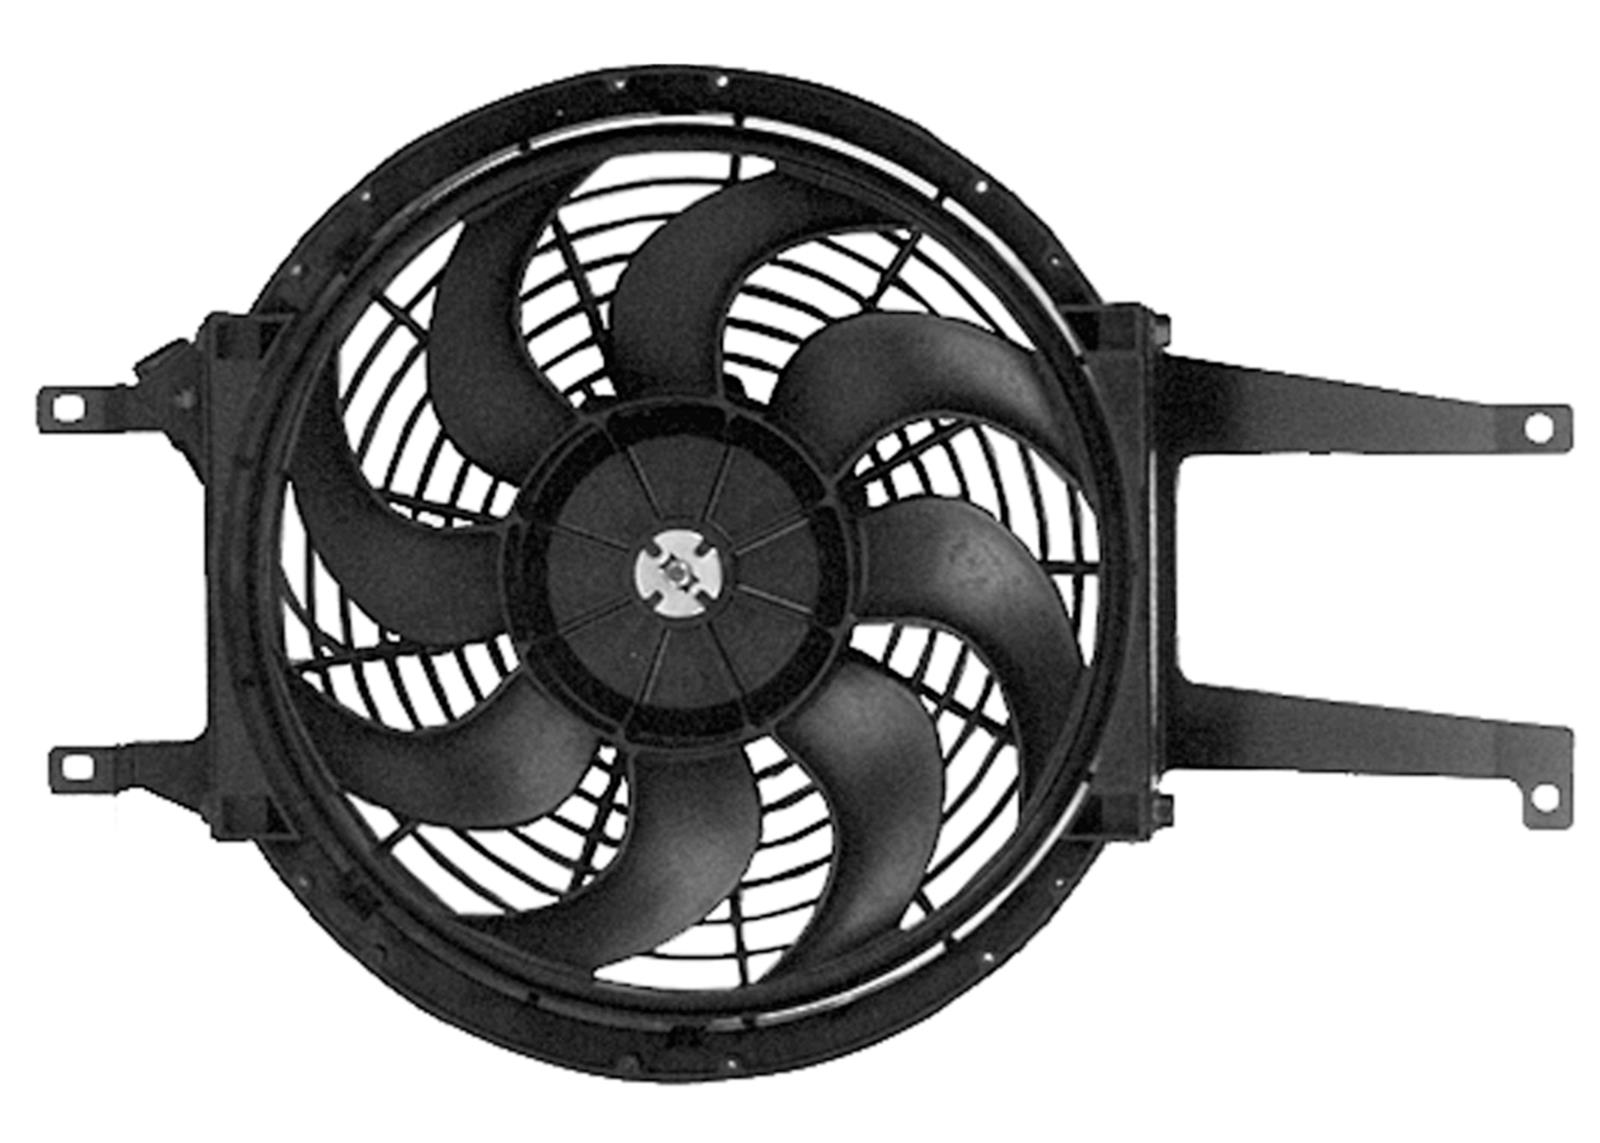 hight resolution of acdelco replacement electric cooling fan kits 15717423 free shipping on orders over 99 at summit racing